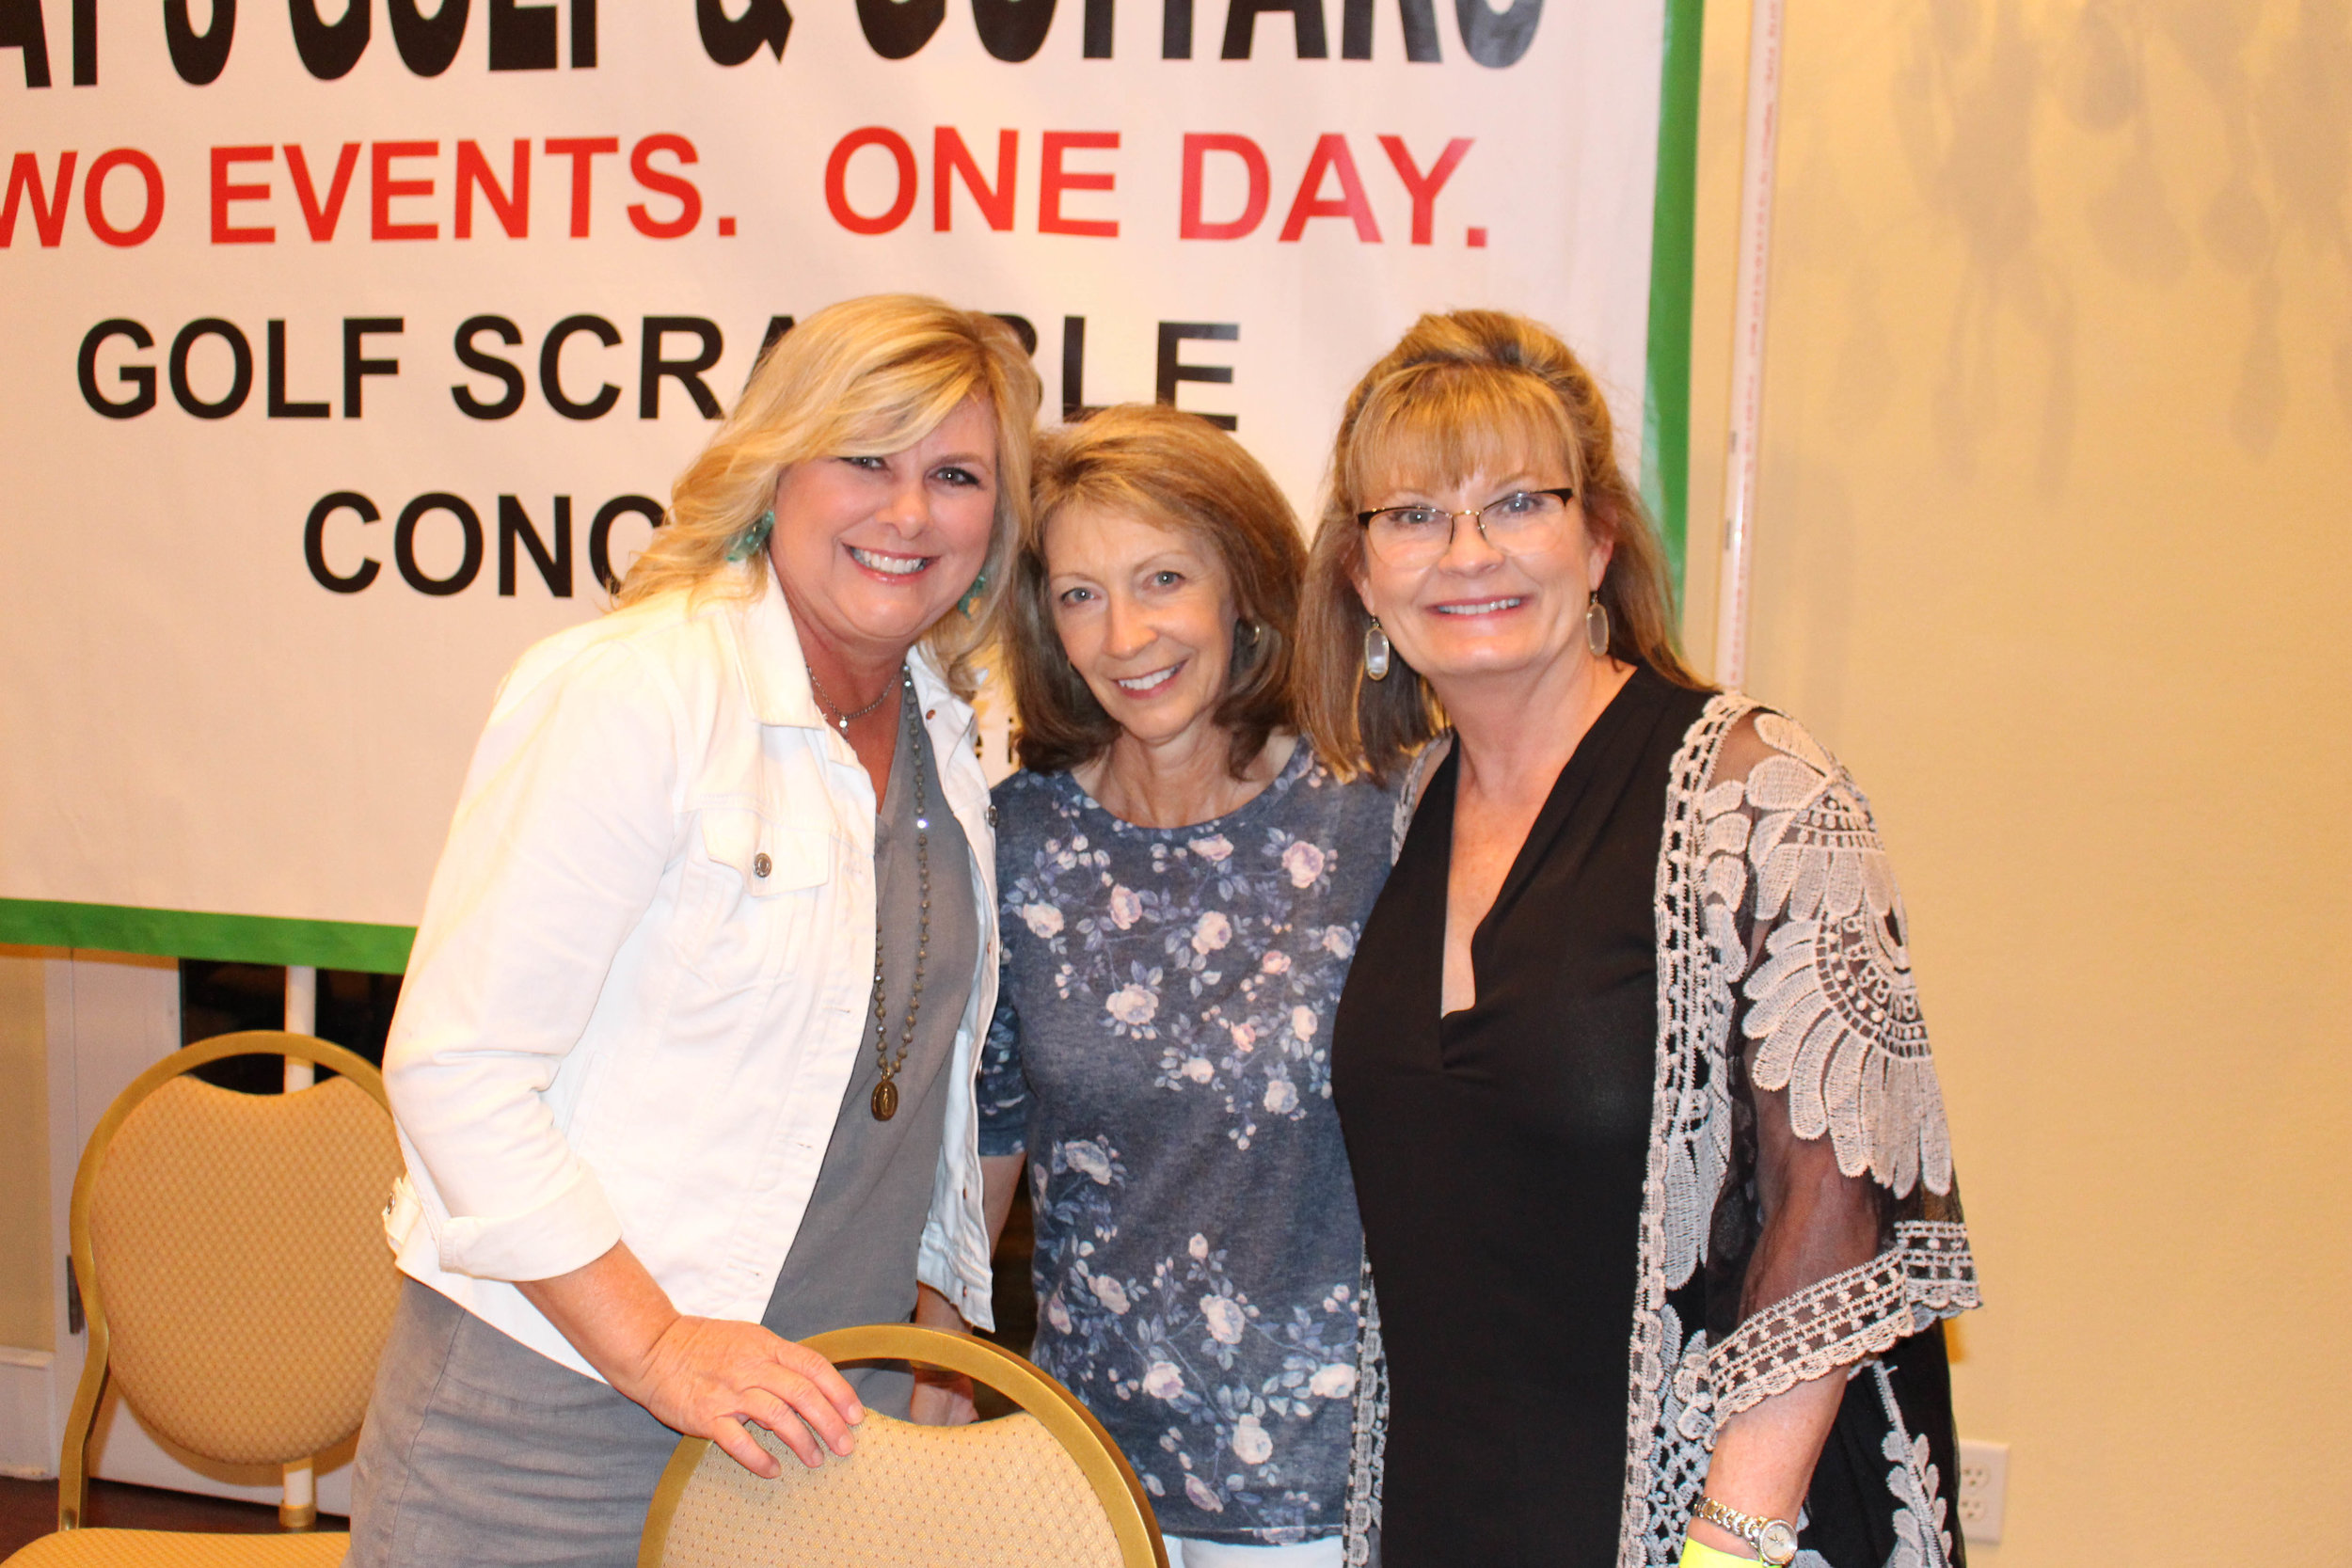 Sharon Ward, Bonnie Lamb and Brenda Sutton